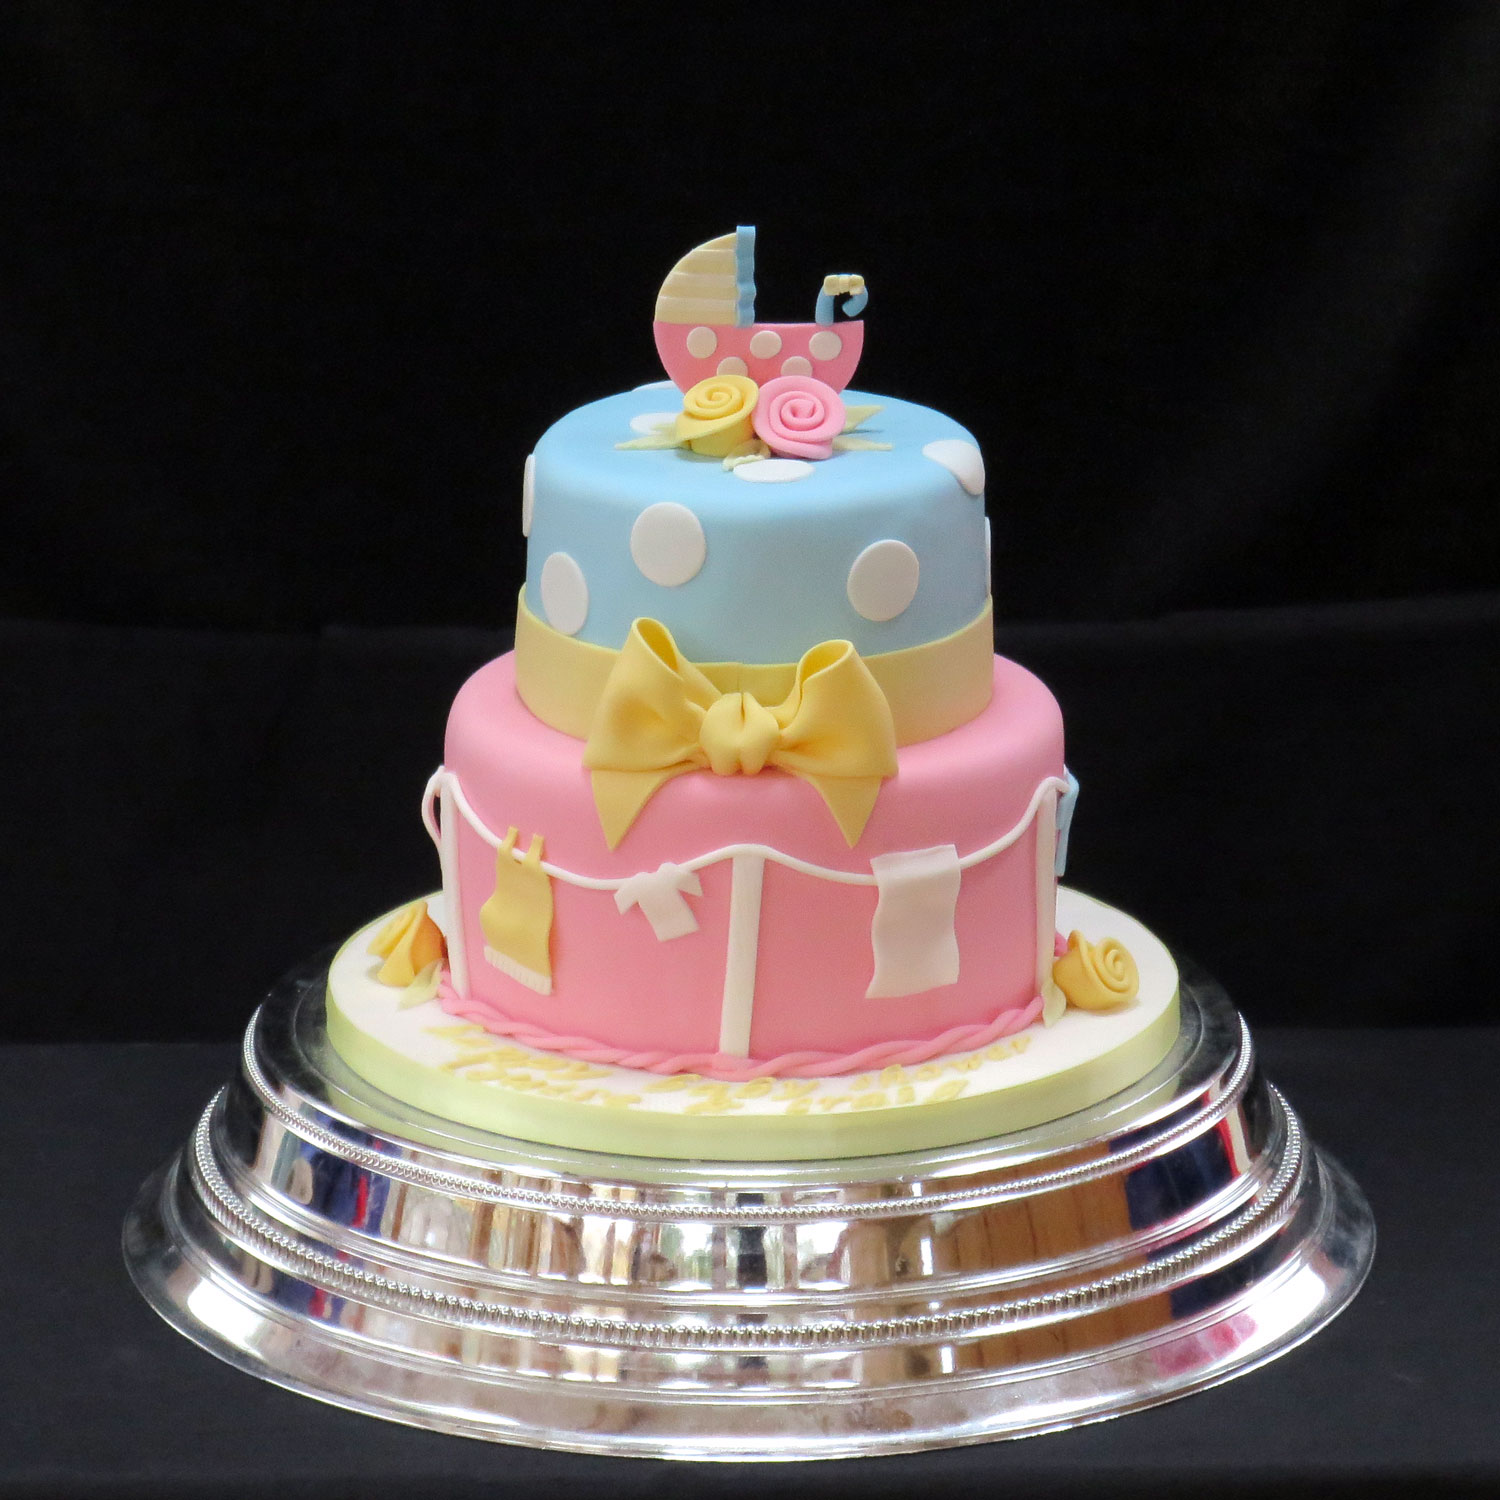 Cake Decorations Uk Baby : Christening Cakes Wedding Cakes Edinburgh, Scotland